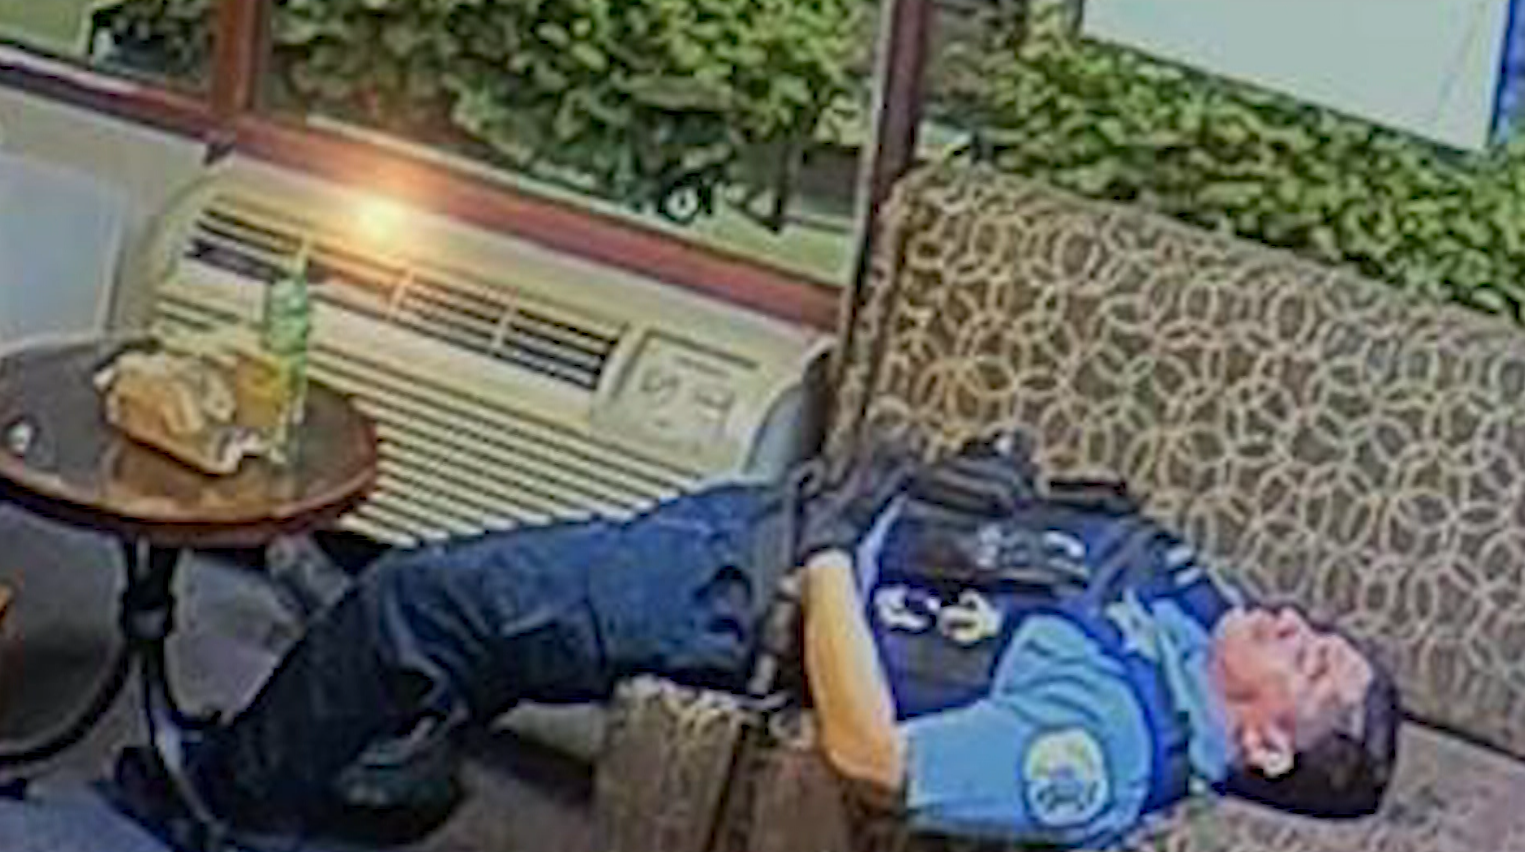 Chicago Police Officers Caught on Video Eating Popcorn, Sleeping While Looting Rage Nearby